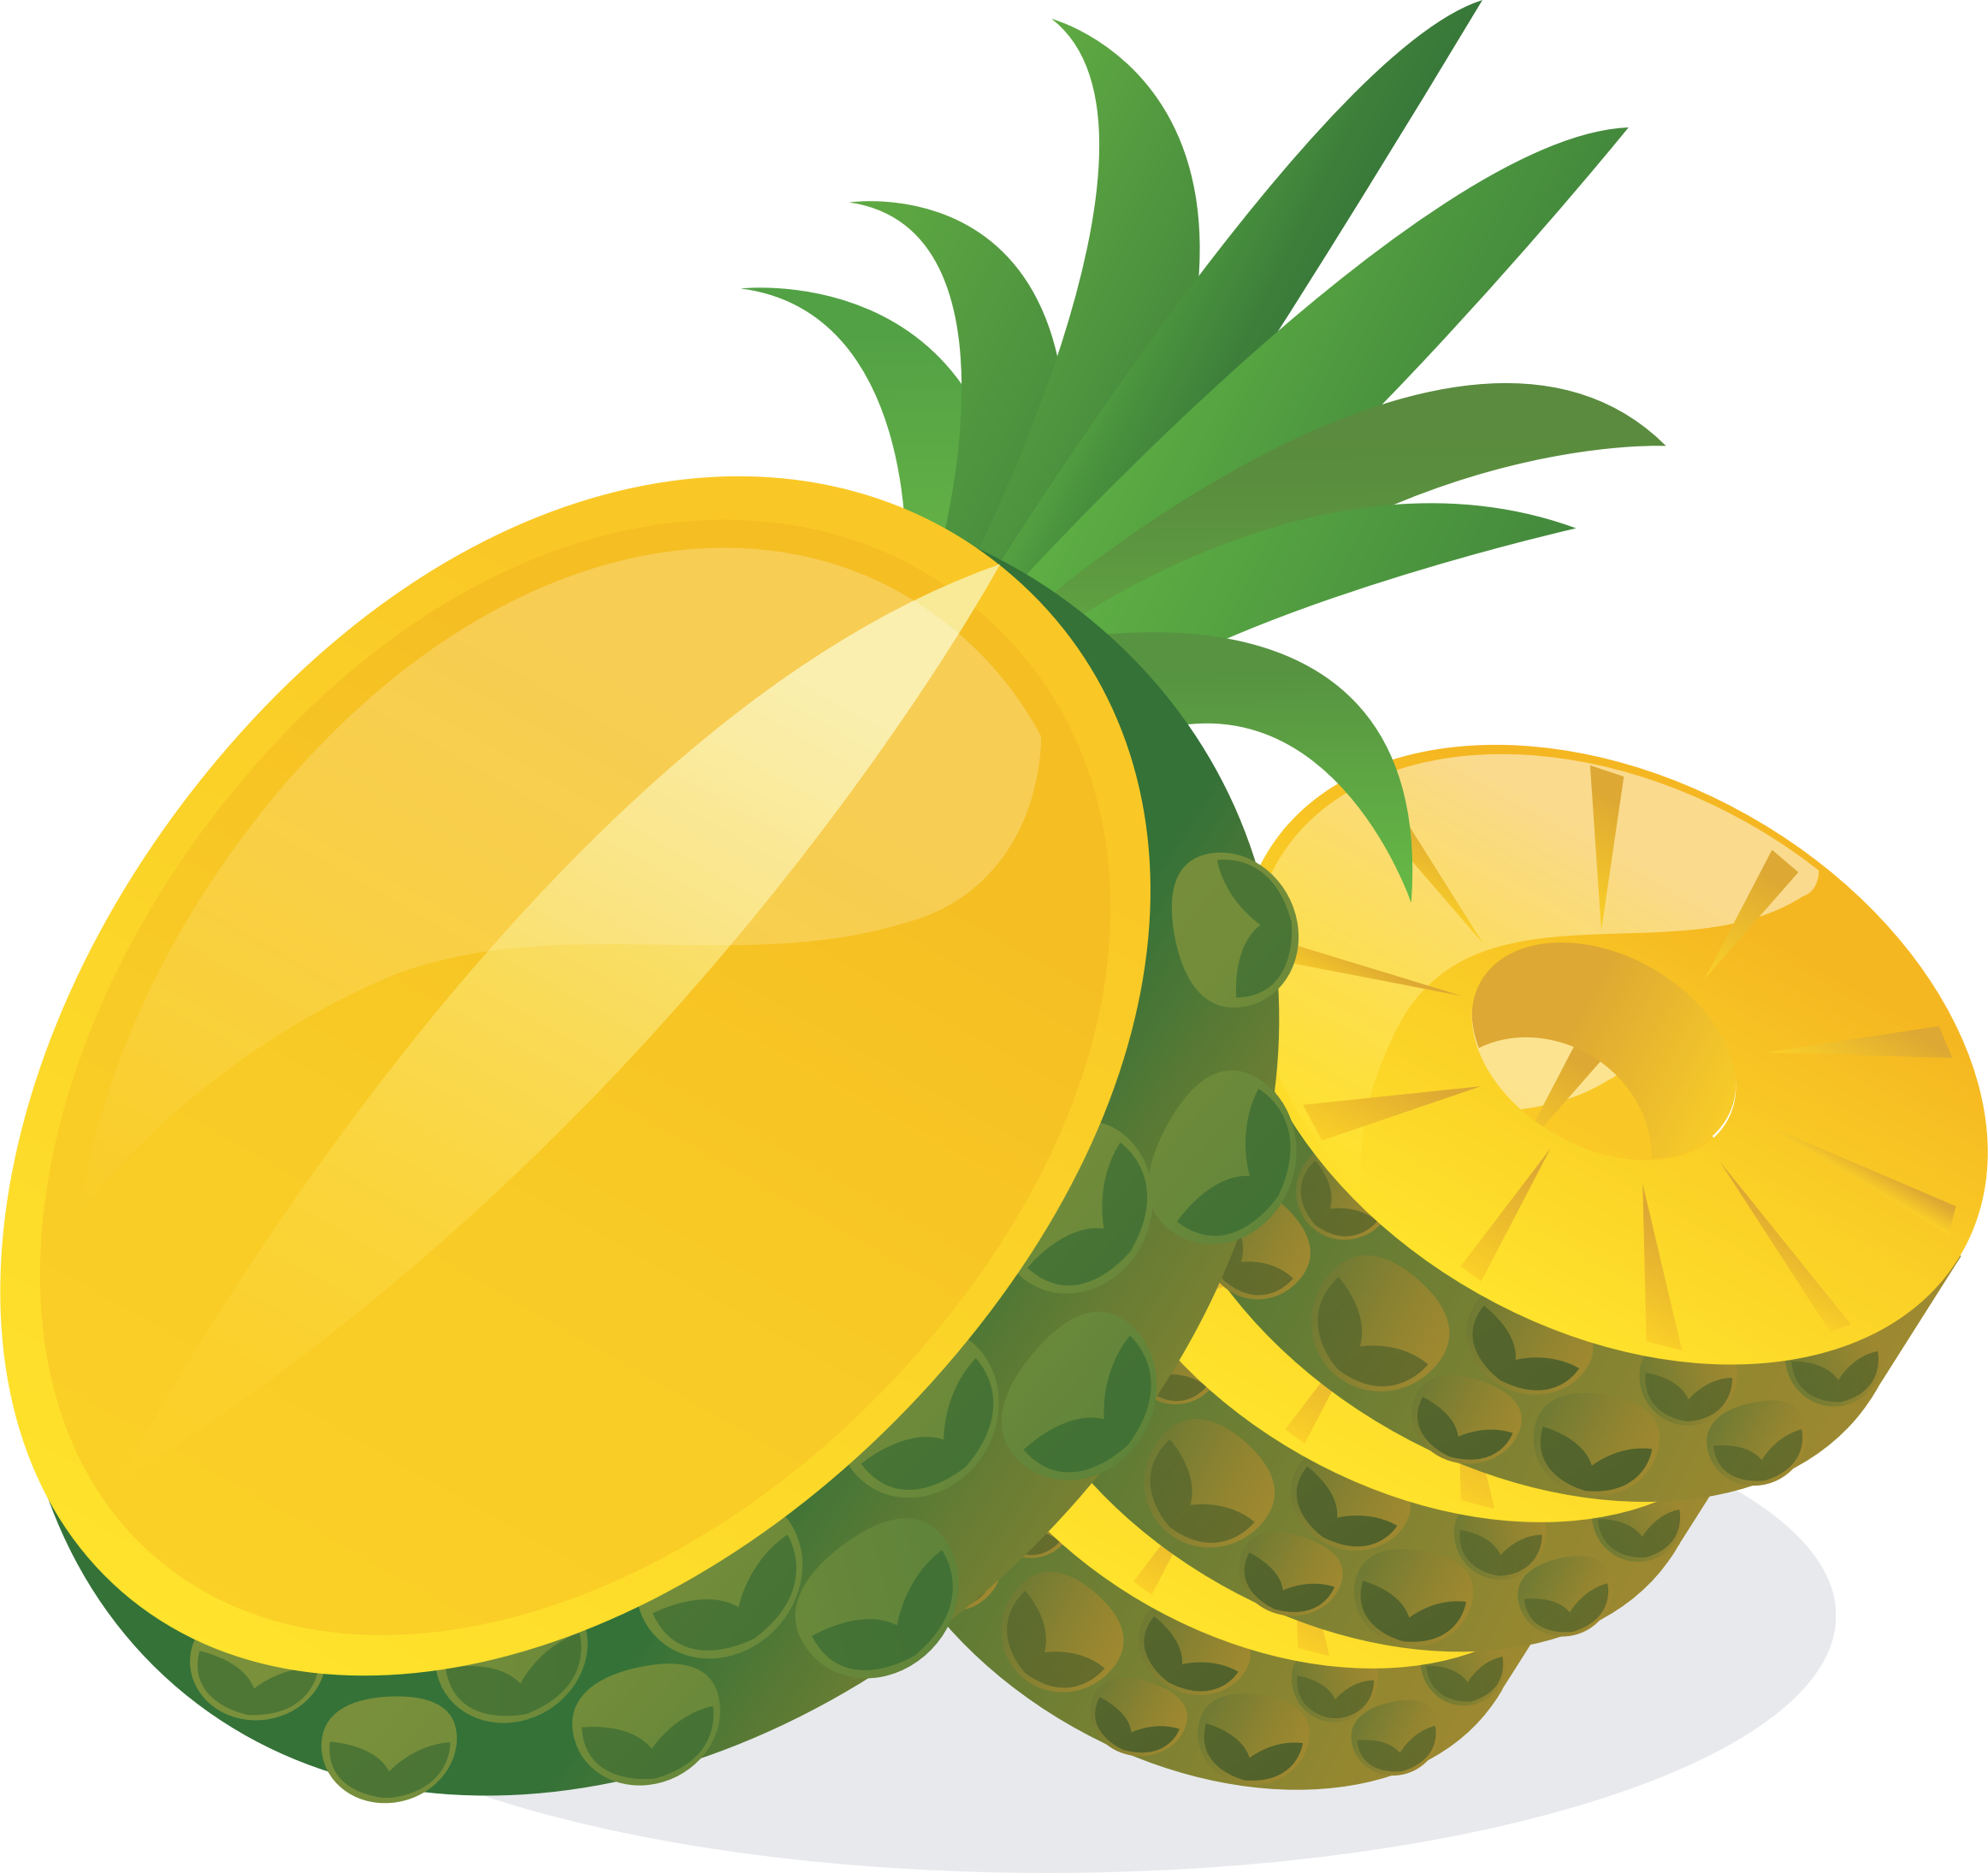 Pineapple by GDJ